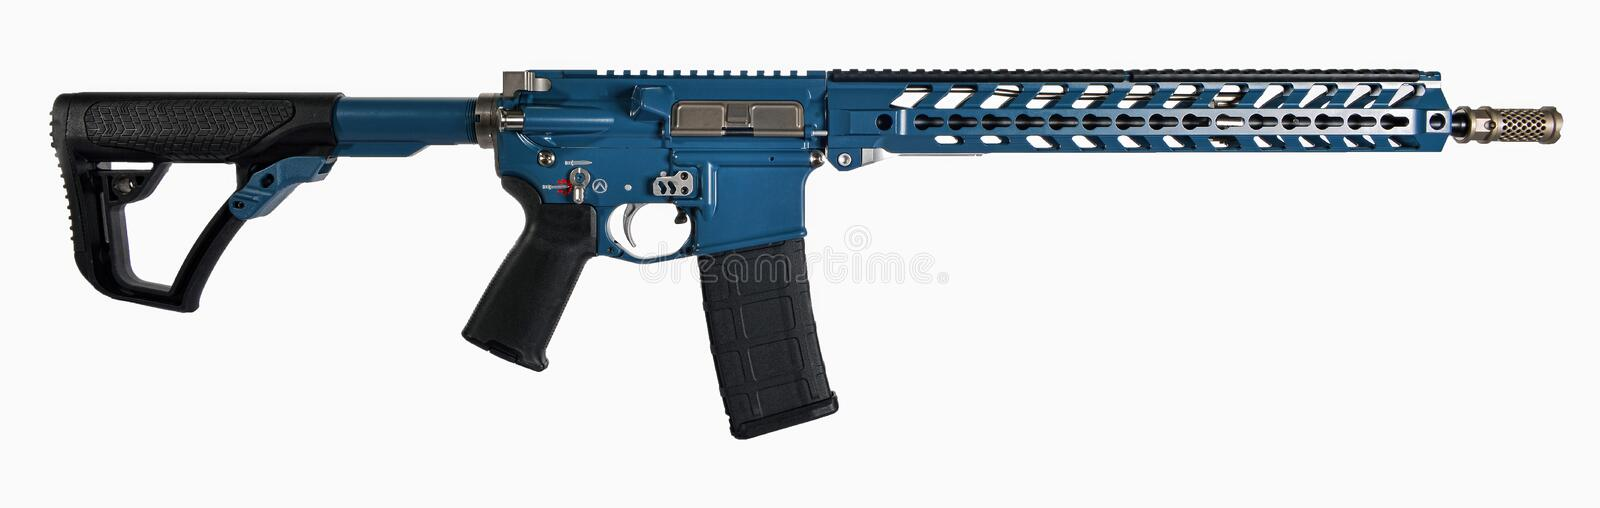 Black & Blue AR15 rifle with SS accents isolated on white background. royalty free stock photography